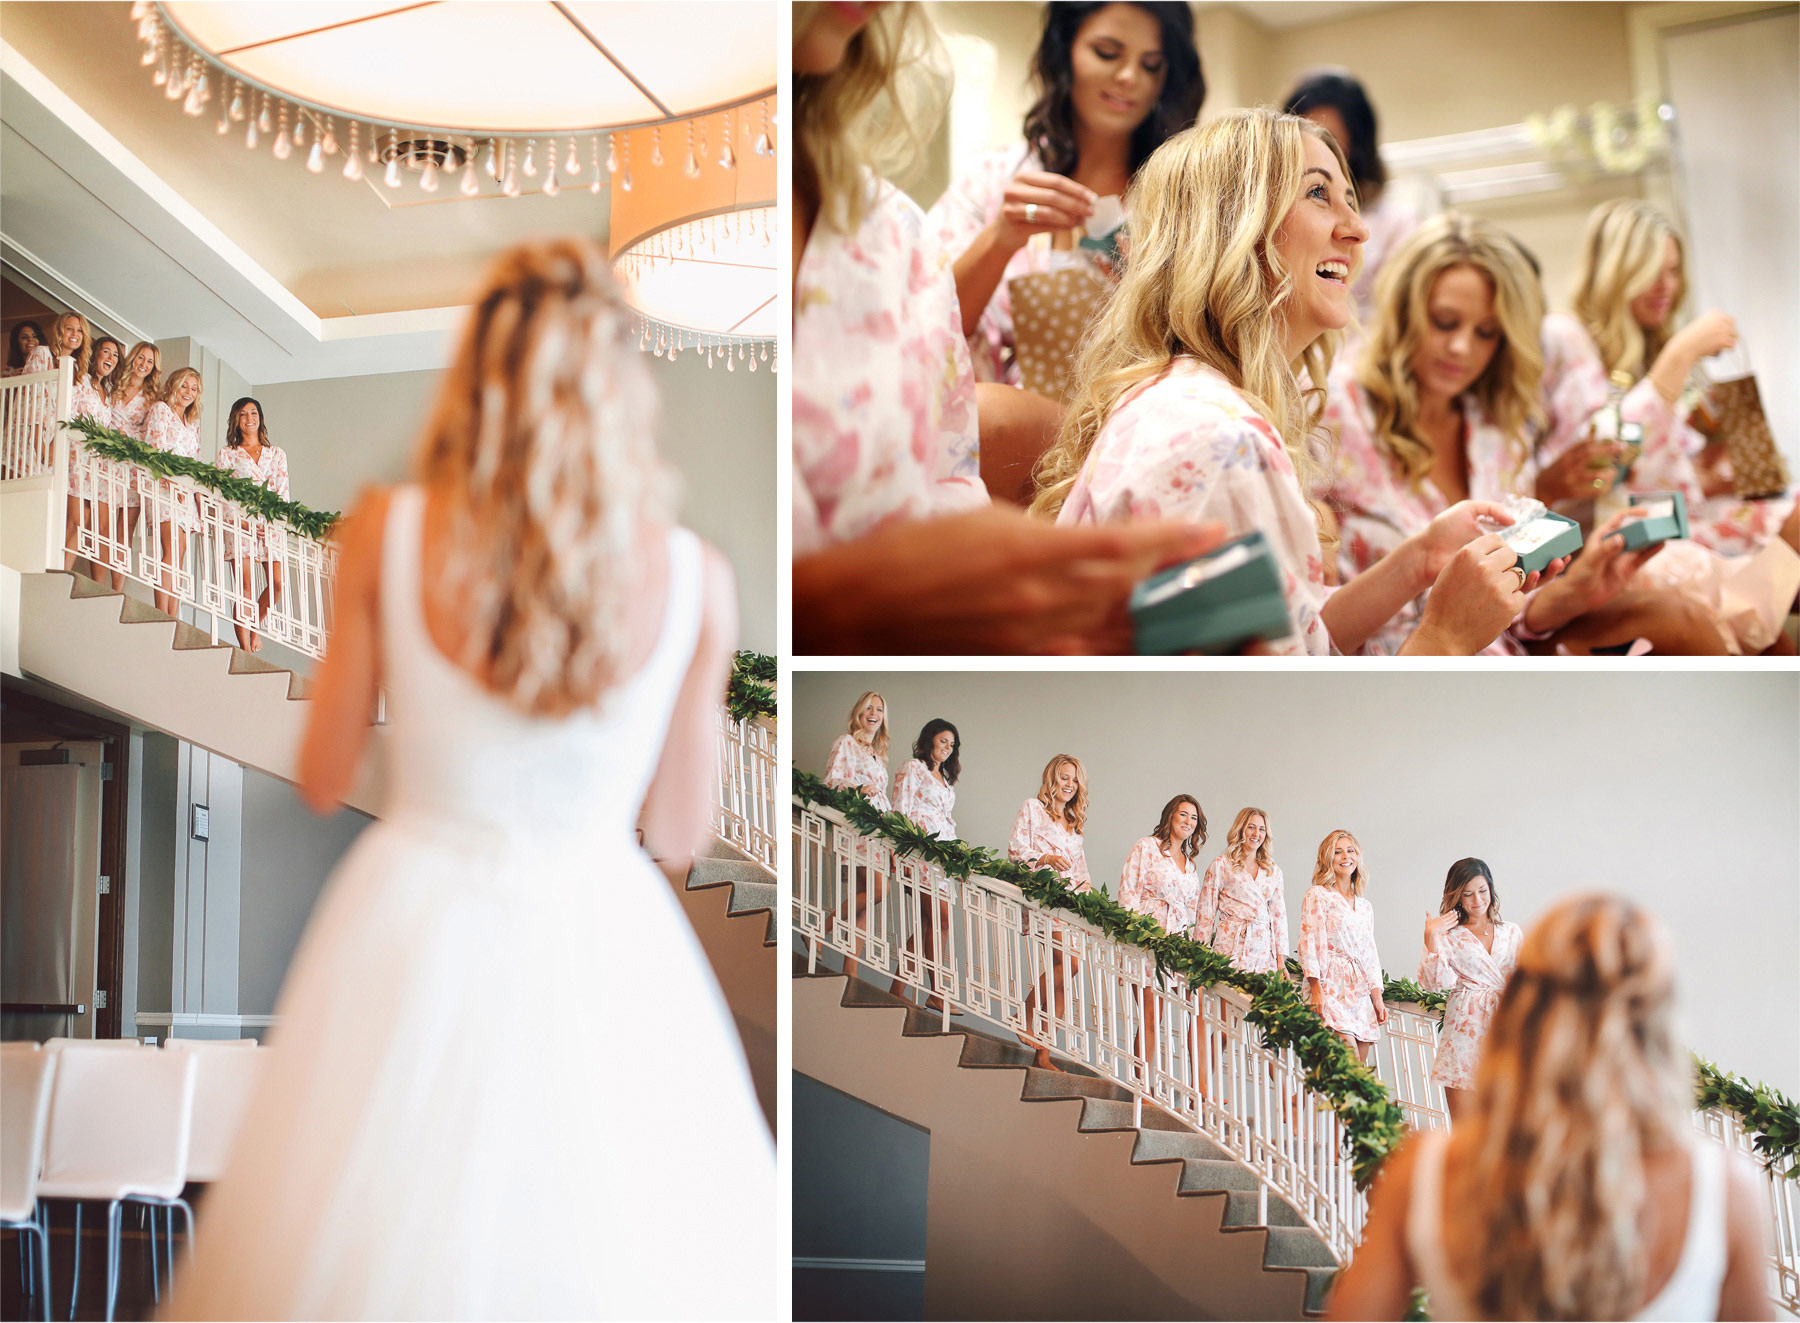 02-Minneapolis-Minnesota-Wedding-Photographer-by-Andrew-Vick-Photography-Summer-Calhoun-Beach-Club-Getting-Ready-Bride-Bridesmaids-Reveal-Staircase-Stairs-Gifts-Earrings-Tiffany-Lexie-and-James.jpg